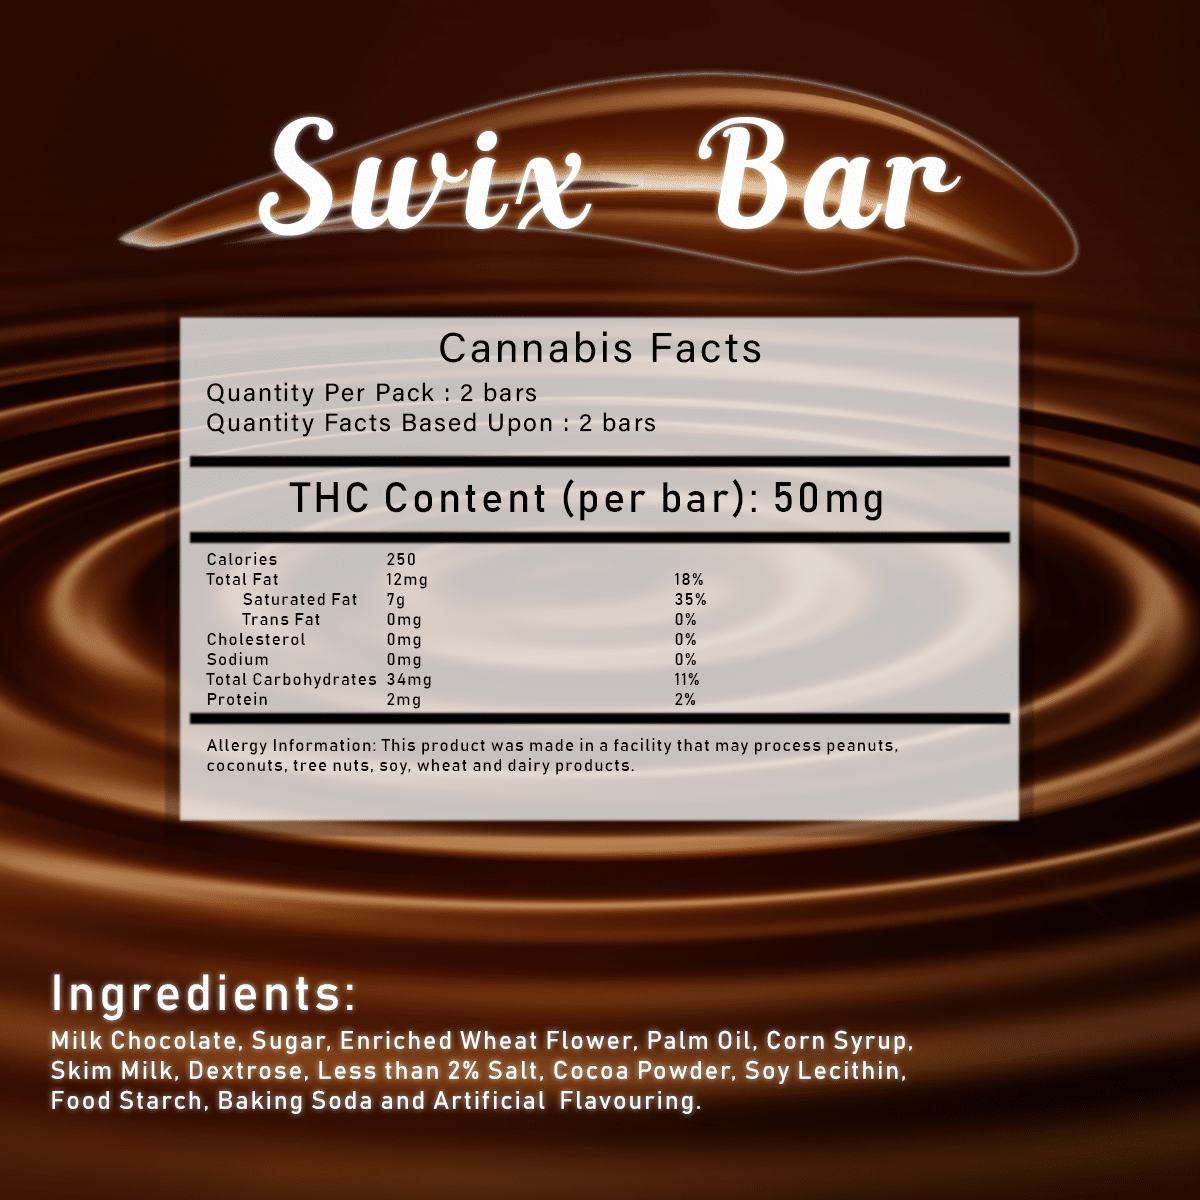 Swix Bar by Herbivores Edibles by Green Society - Image © 2018 Green Society. All Rights Reserved.